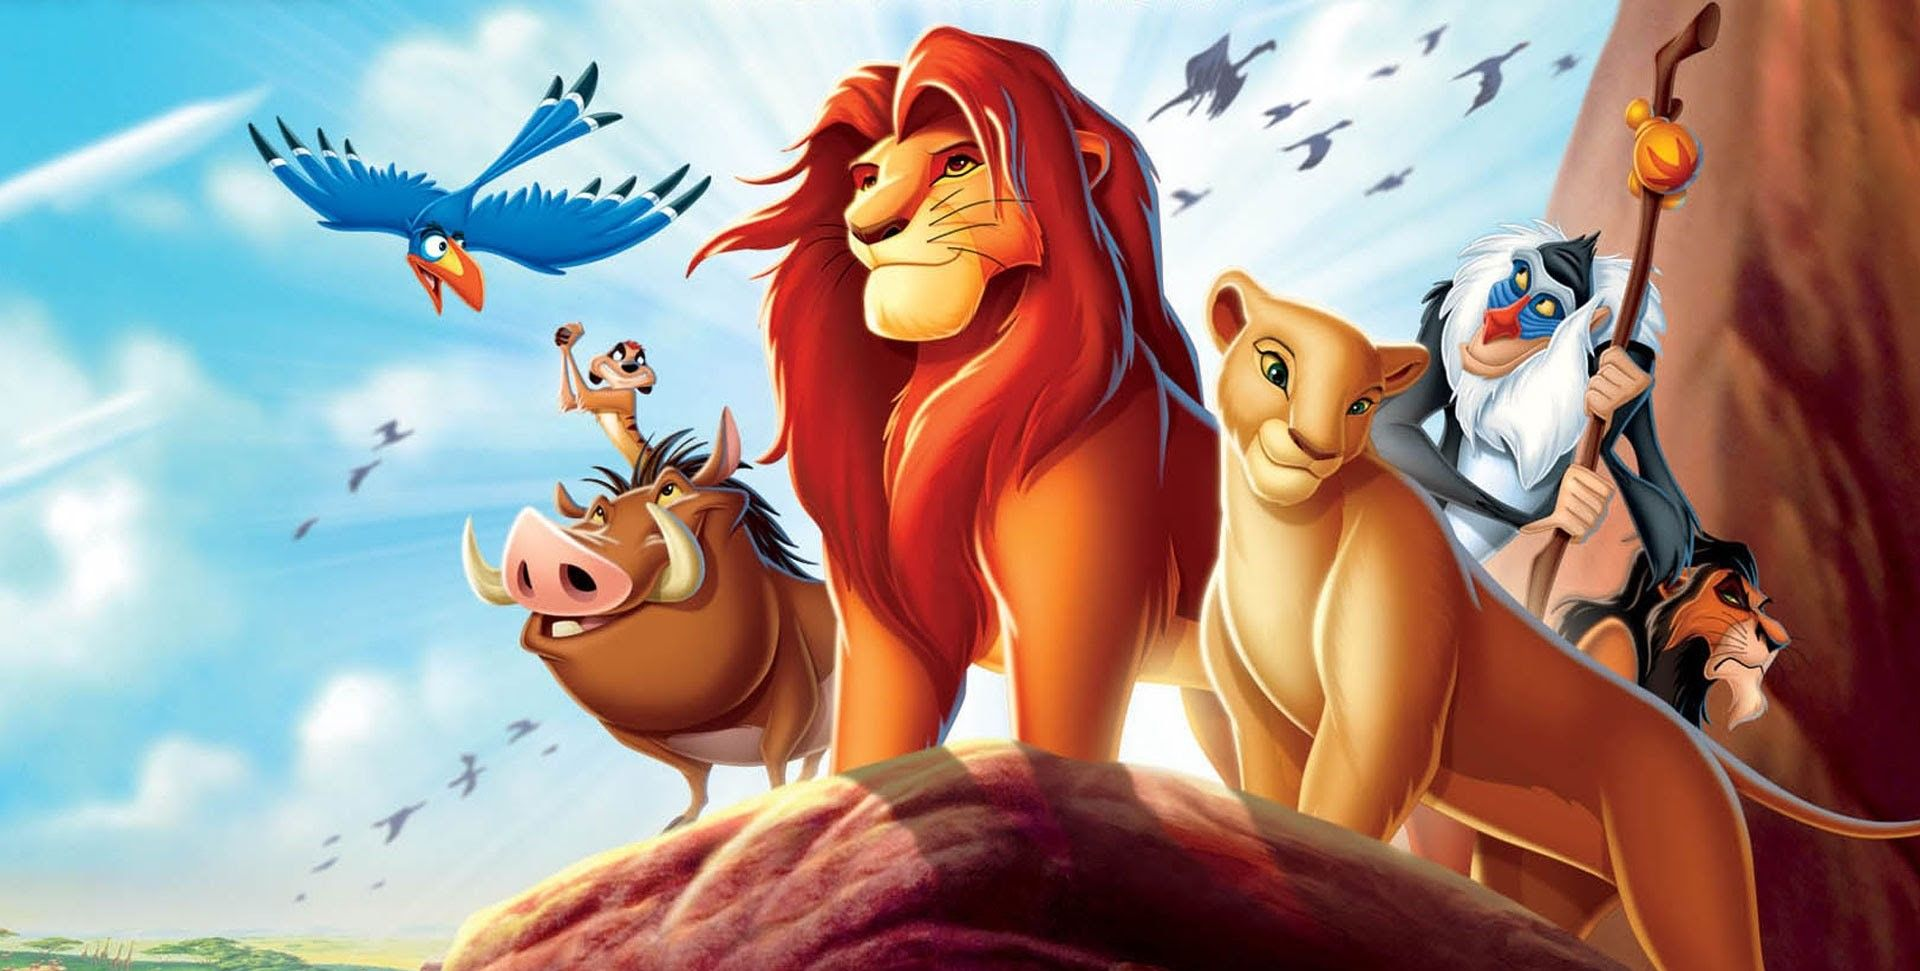 The Original Lion King Animators Are Unhappy With Remake - Here's Why